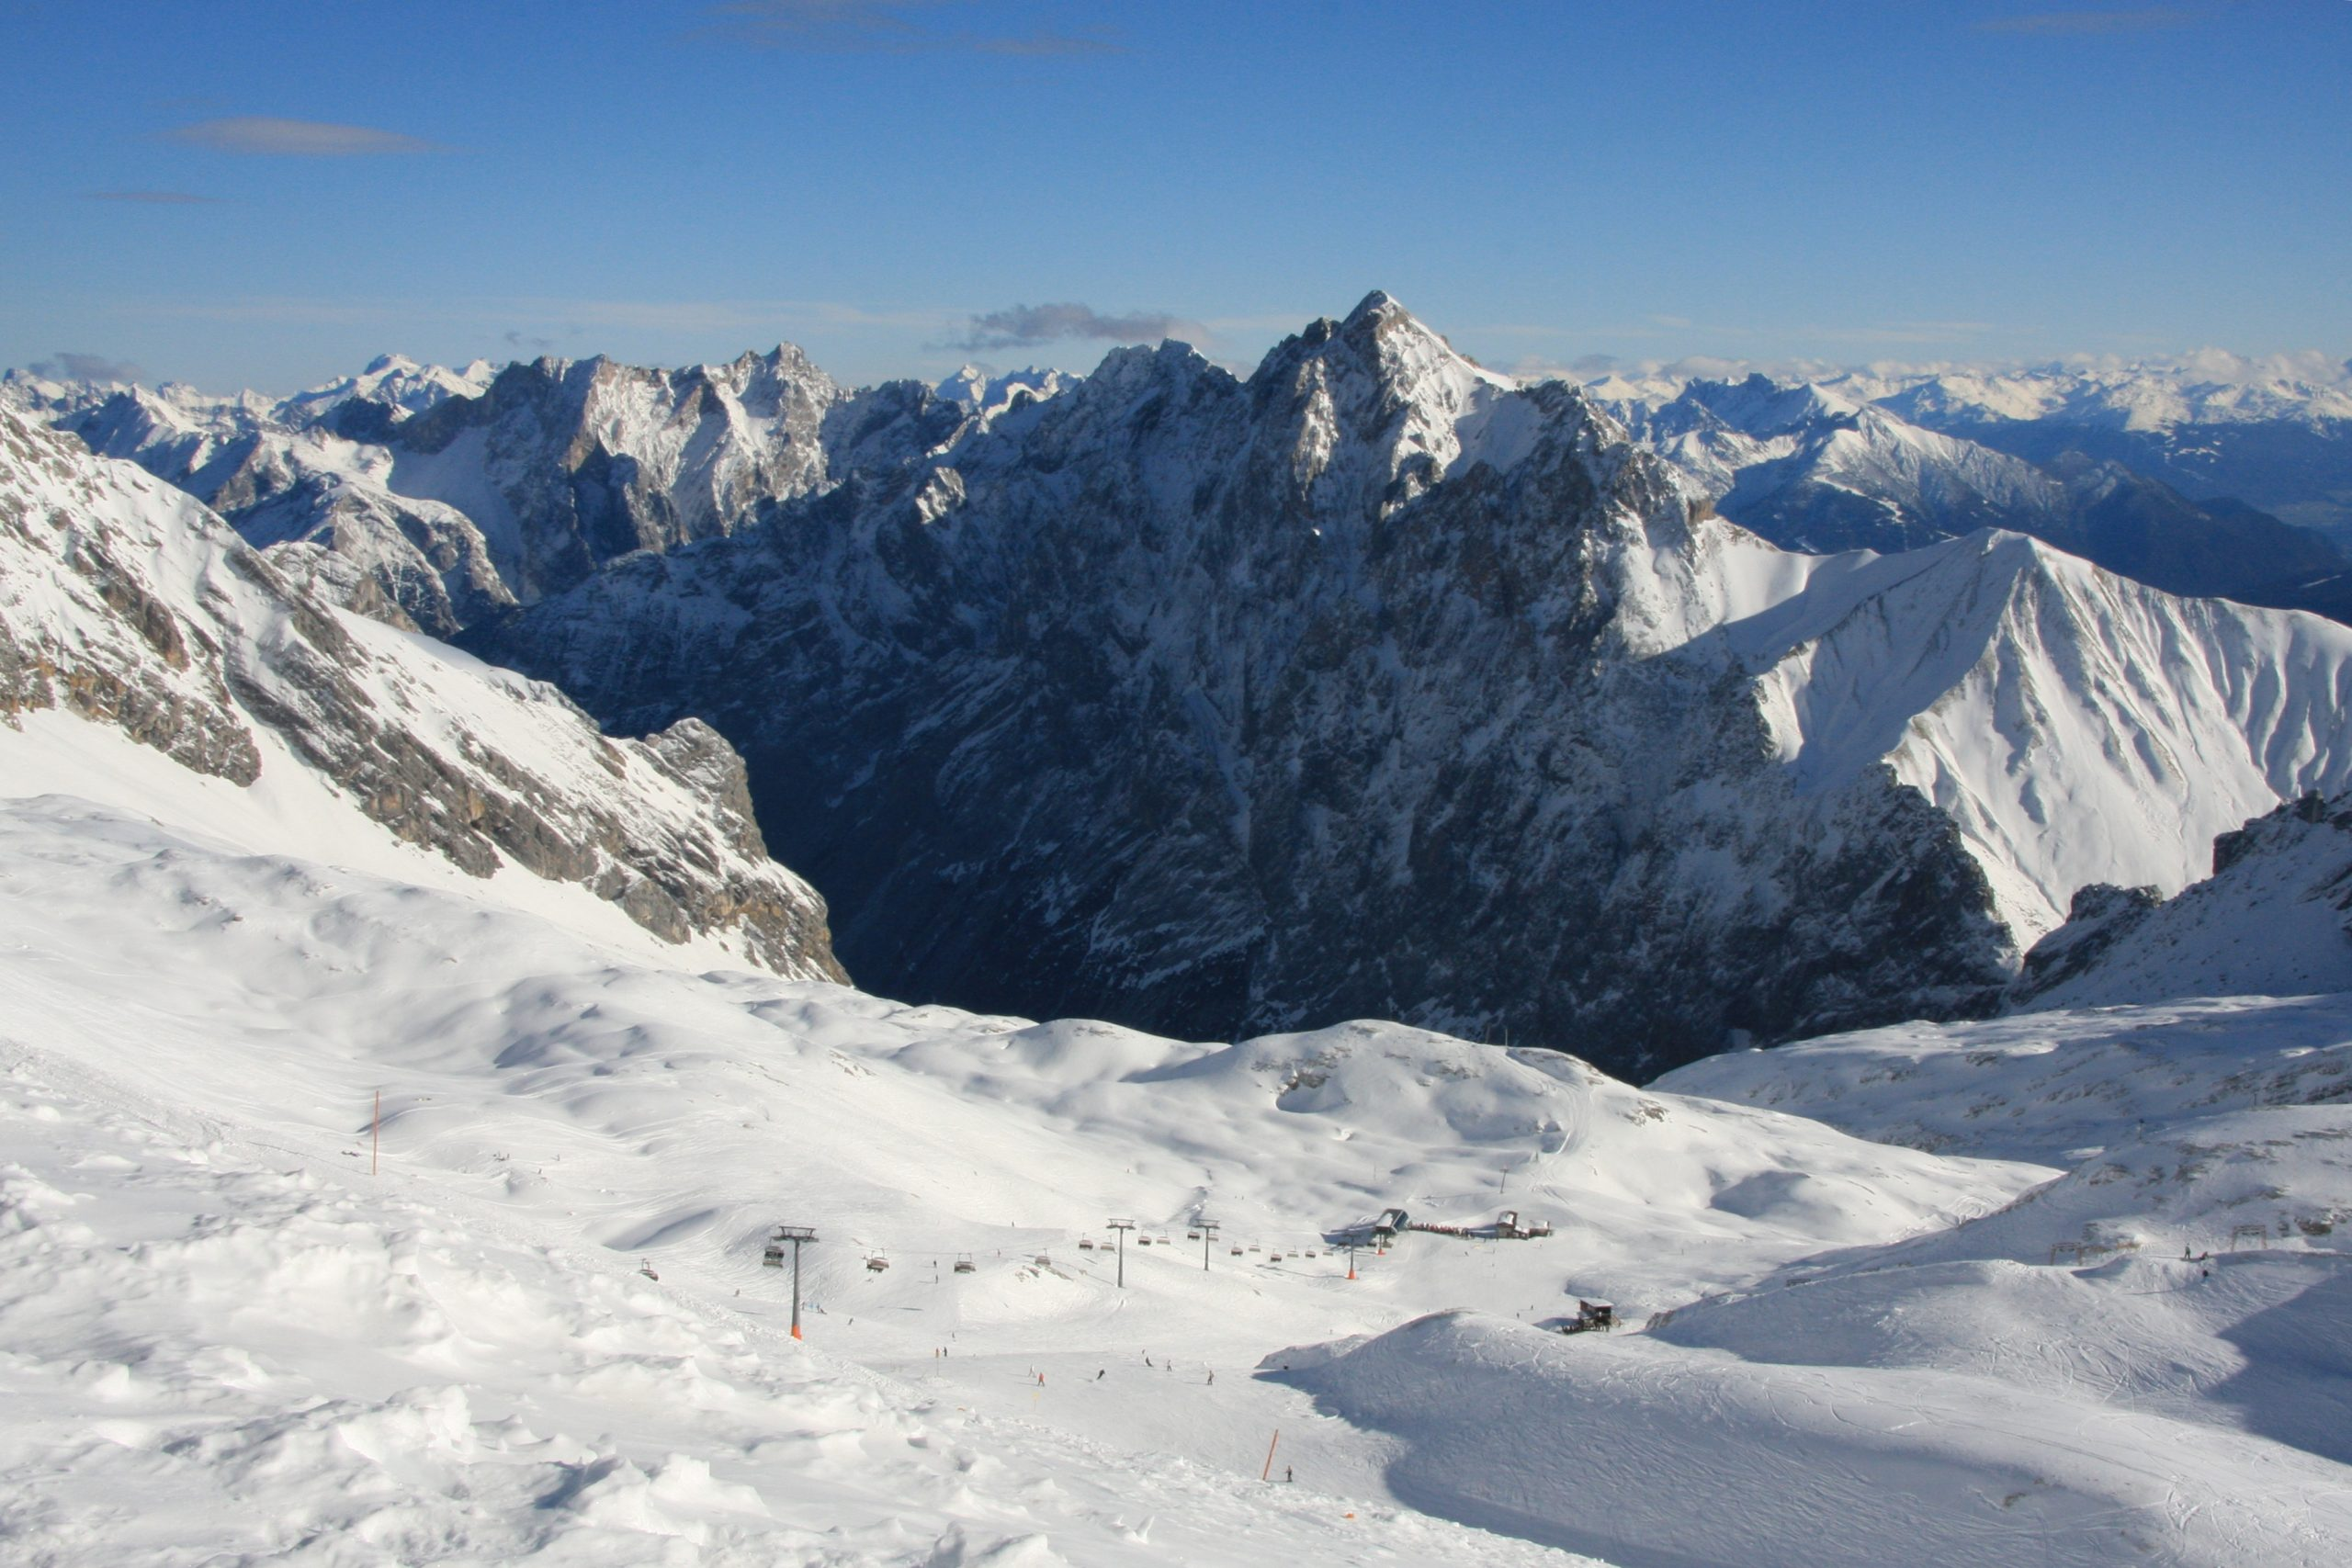 A snowy mountain range with ski lifts set against a blue sky.